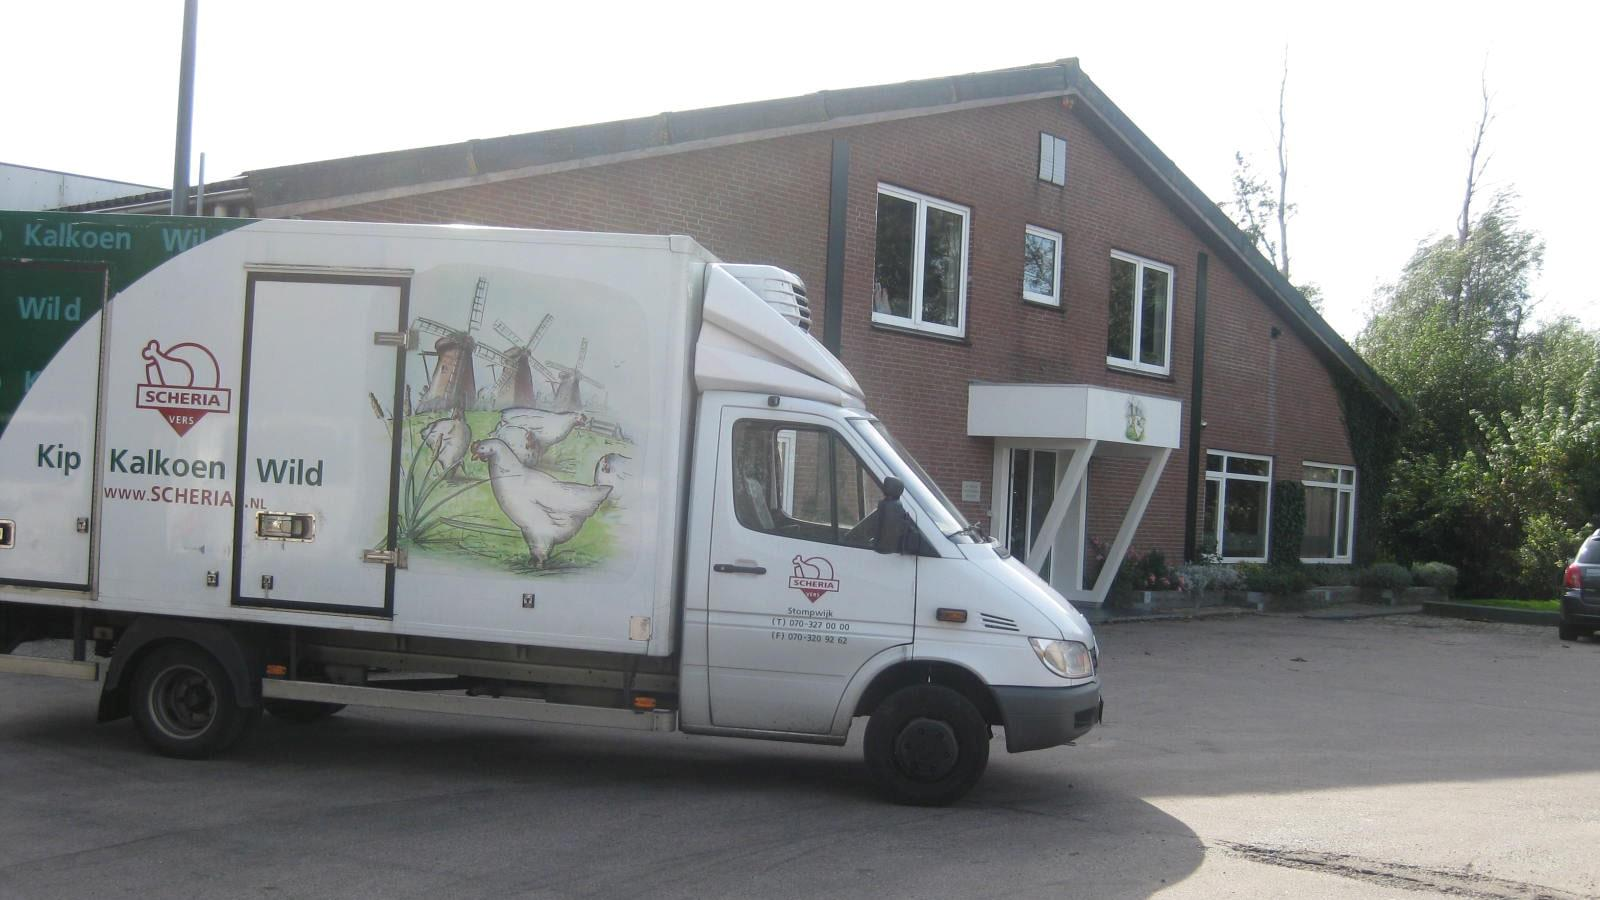 Van with chicken graphics standing outside Dutch company Scheria Versdienst